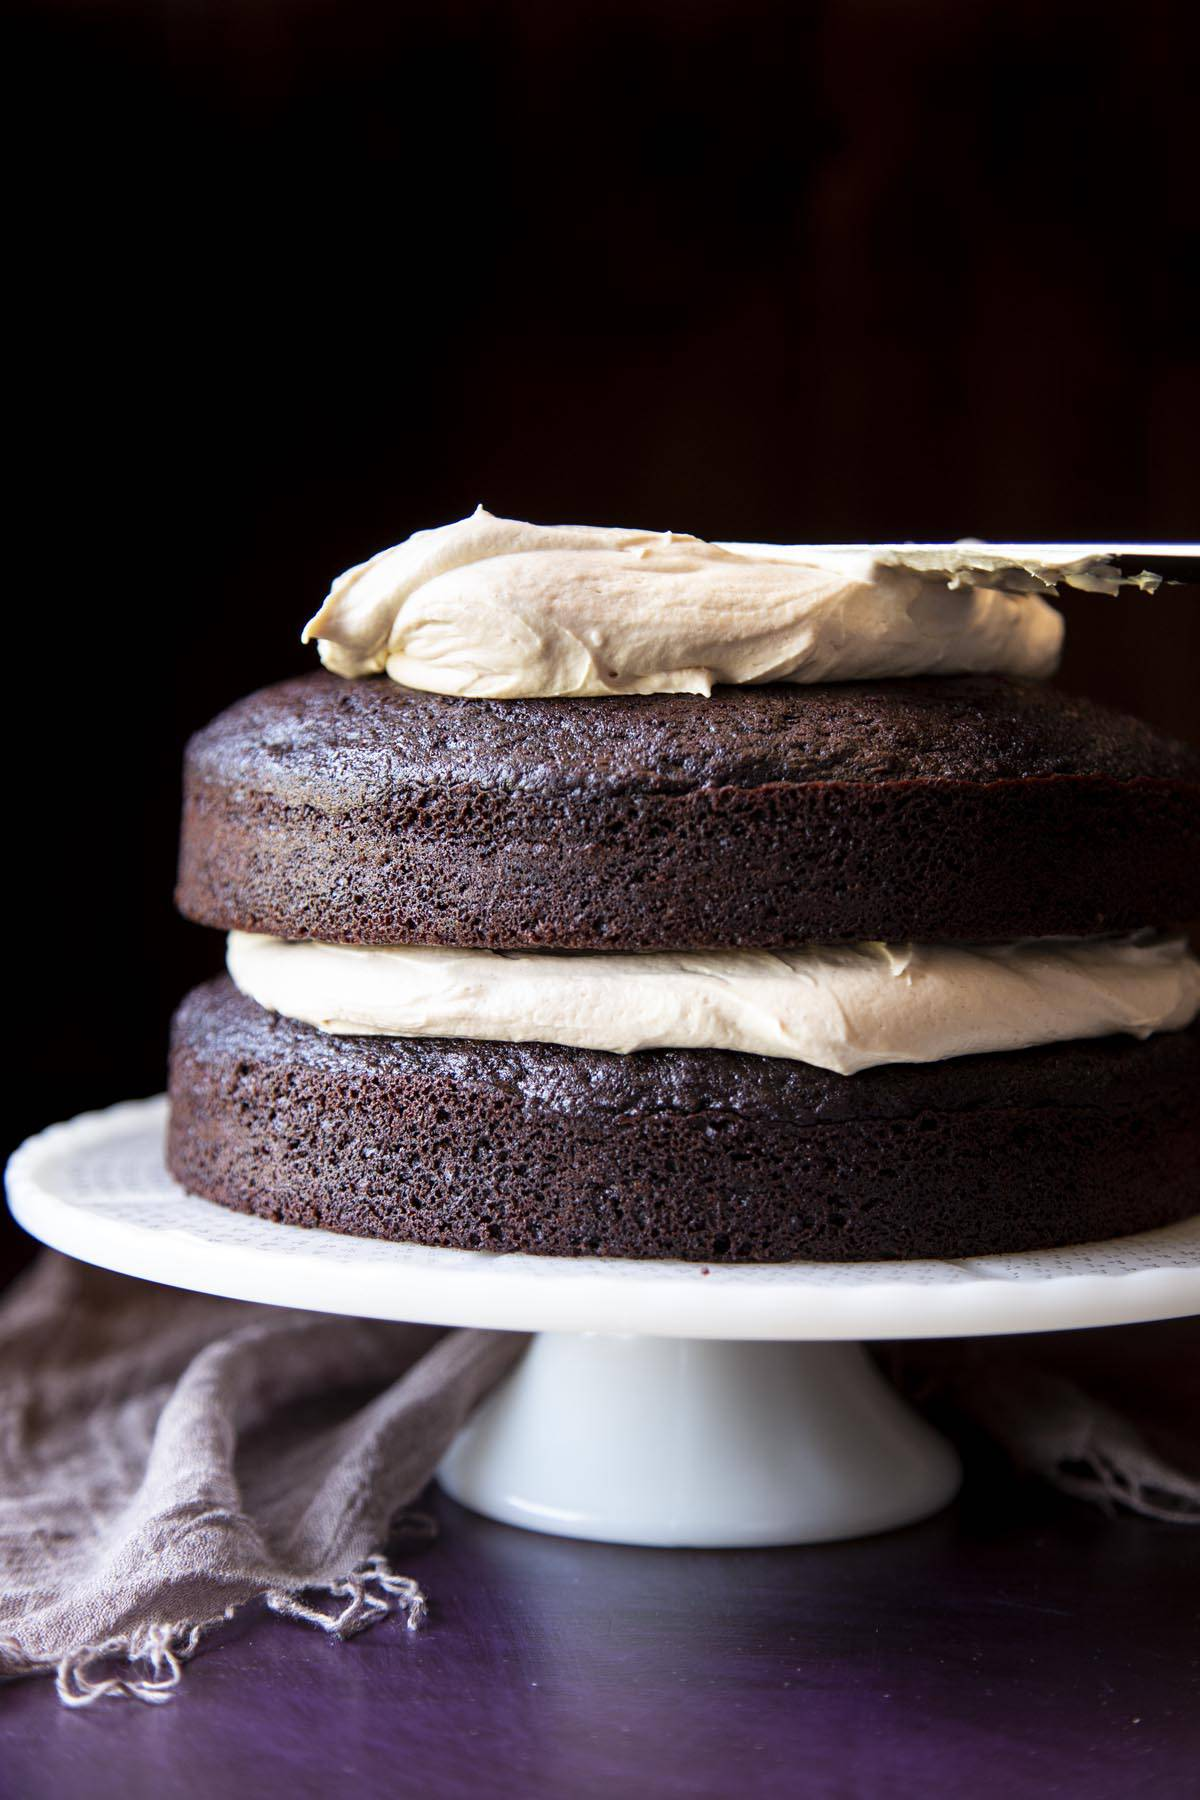 Peanut butter frosting is being spread on top of a two layer chocolate cake